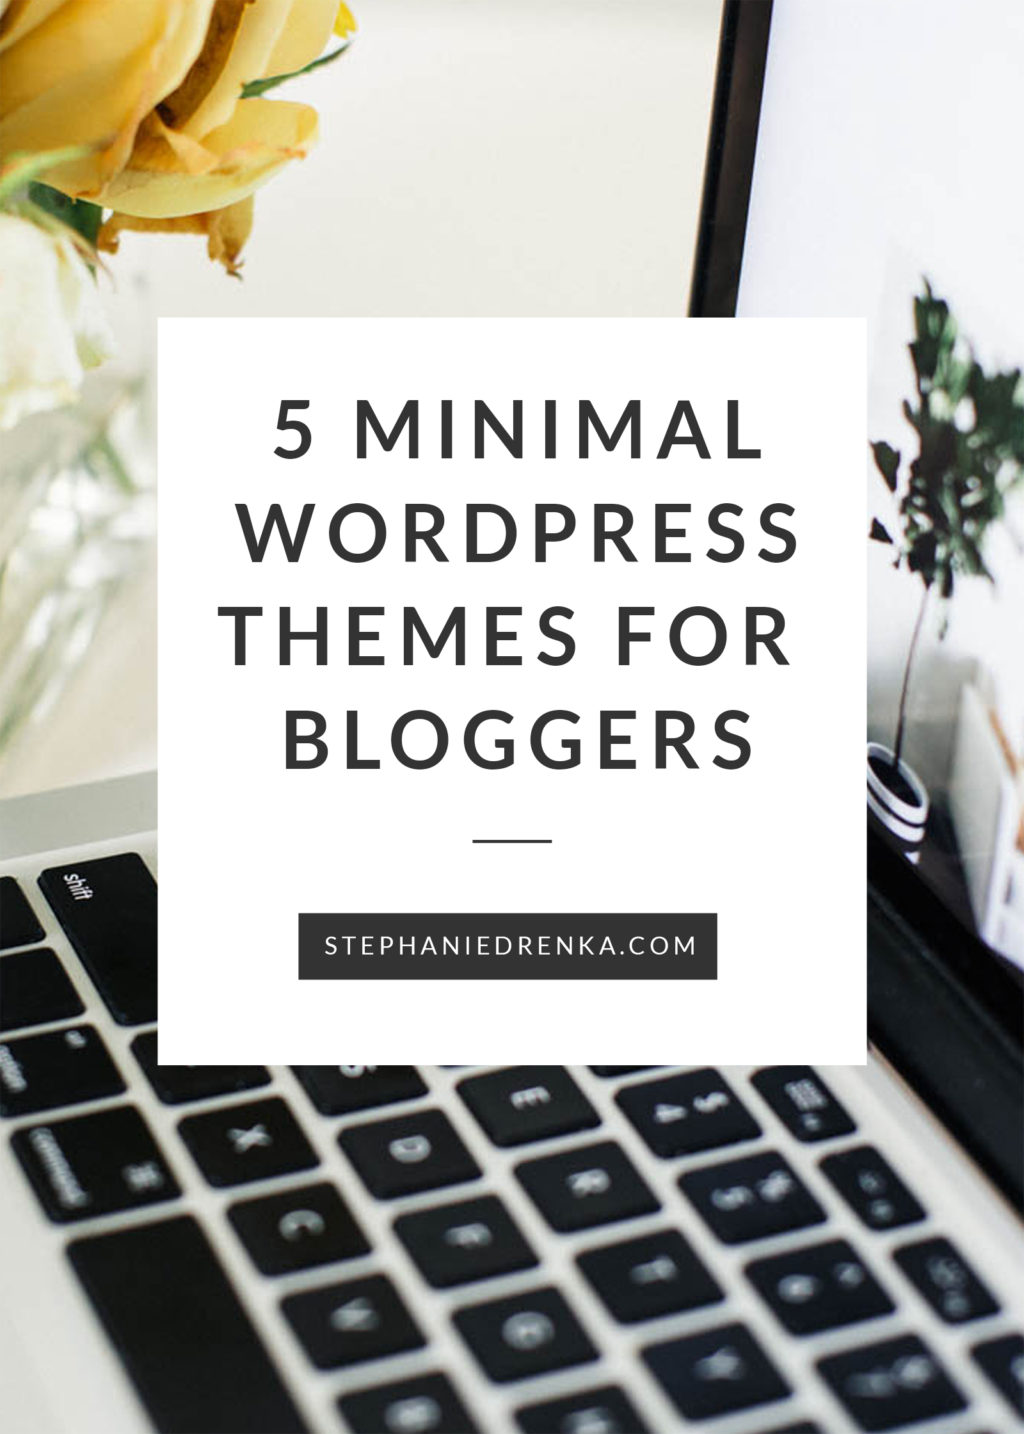 Minimalist blog designs help keep the focus on your content. They also tend to have clean code, less bulky graphics, and load faster (which helps with SEO)!